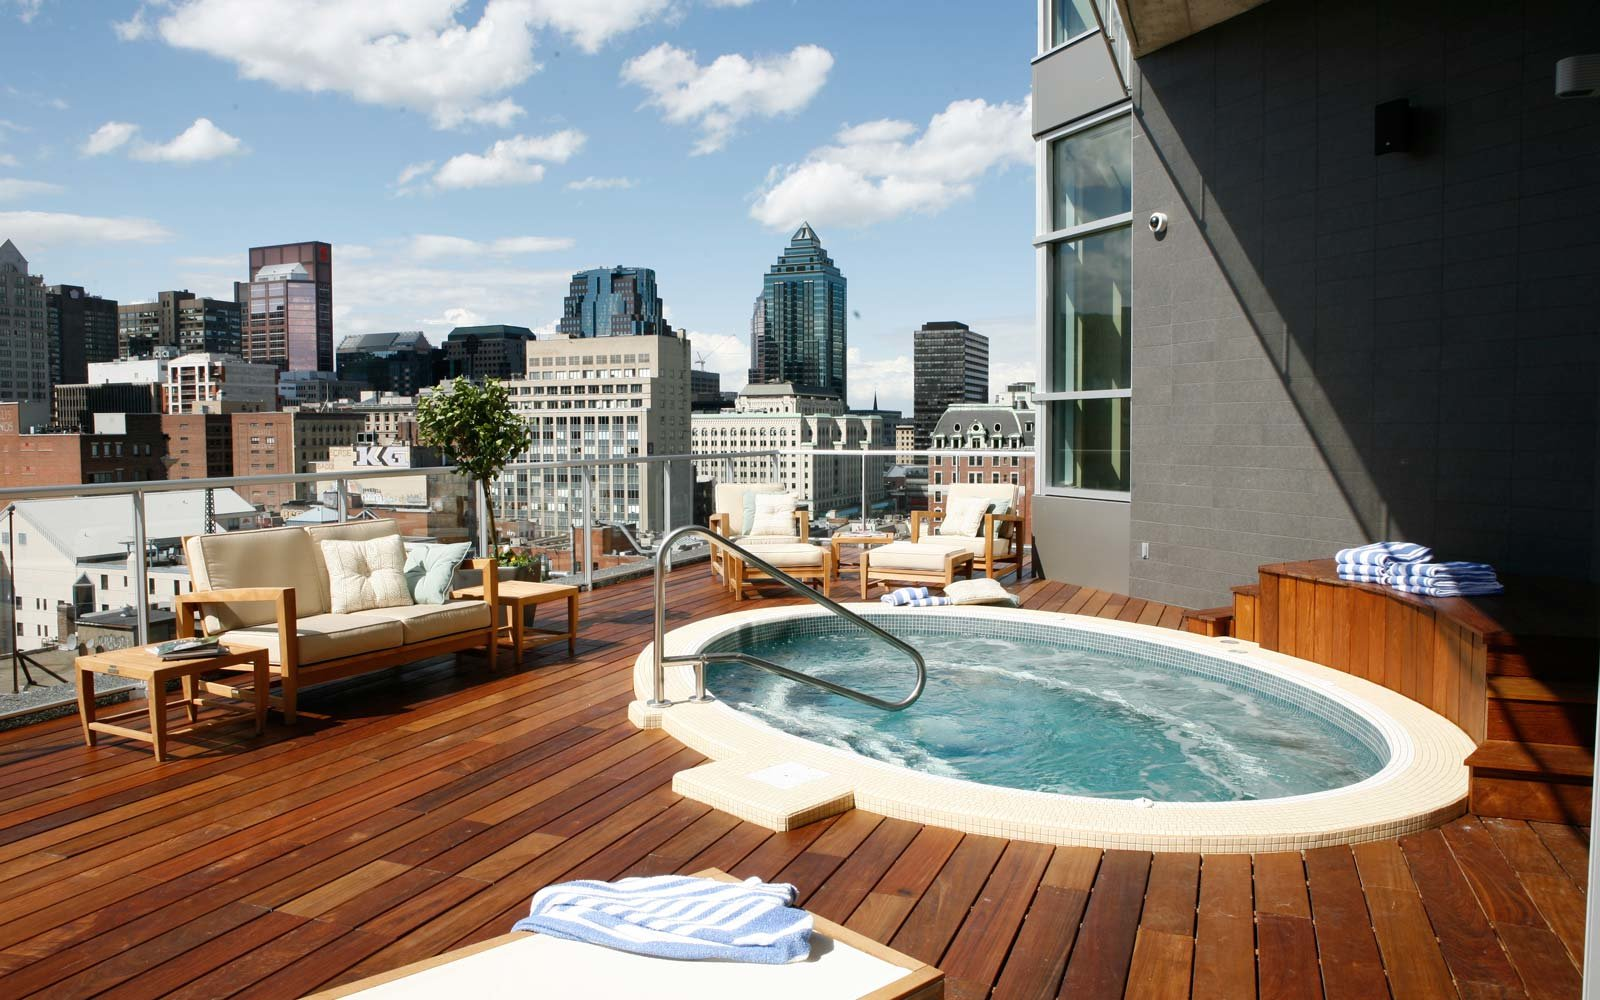 25 Rooftop Pools To Dream About While You Sit In The Office